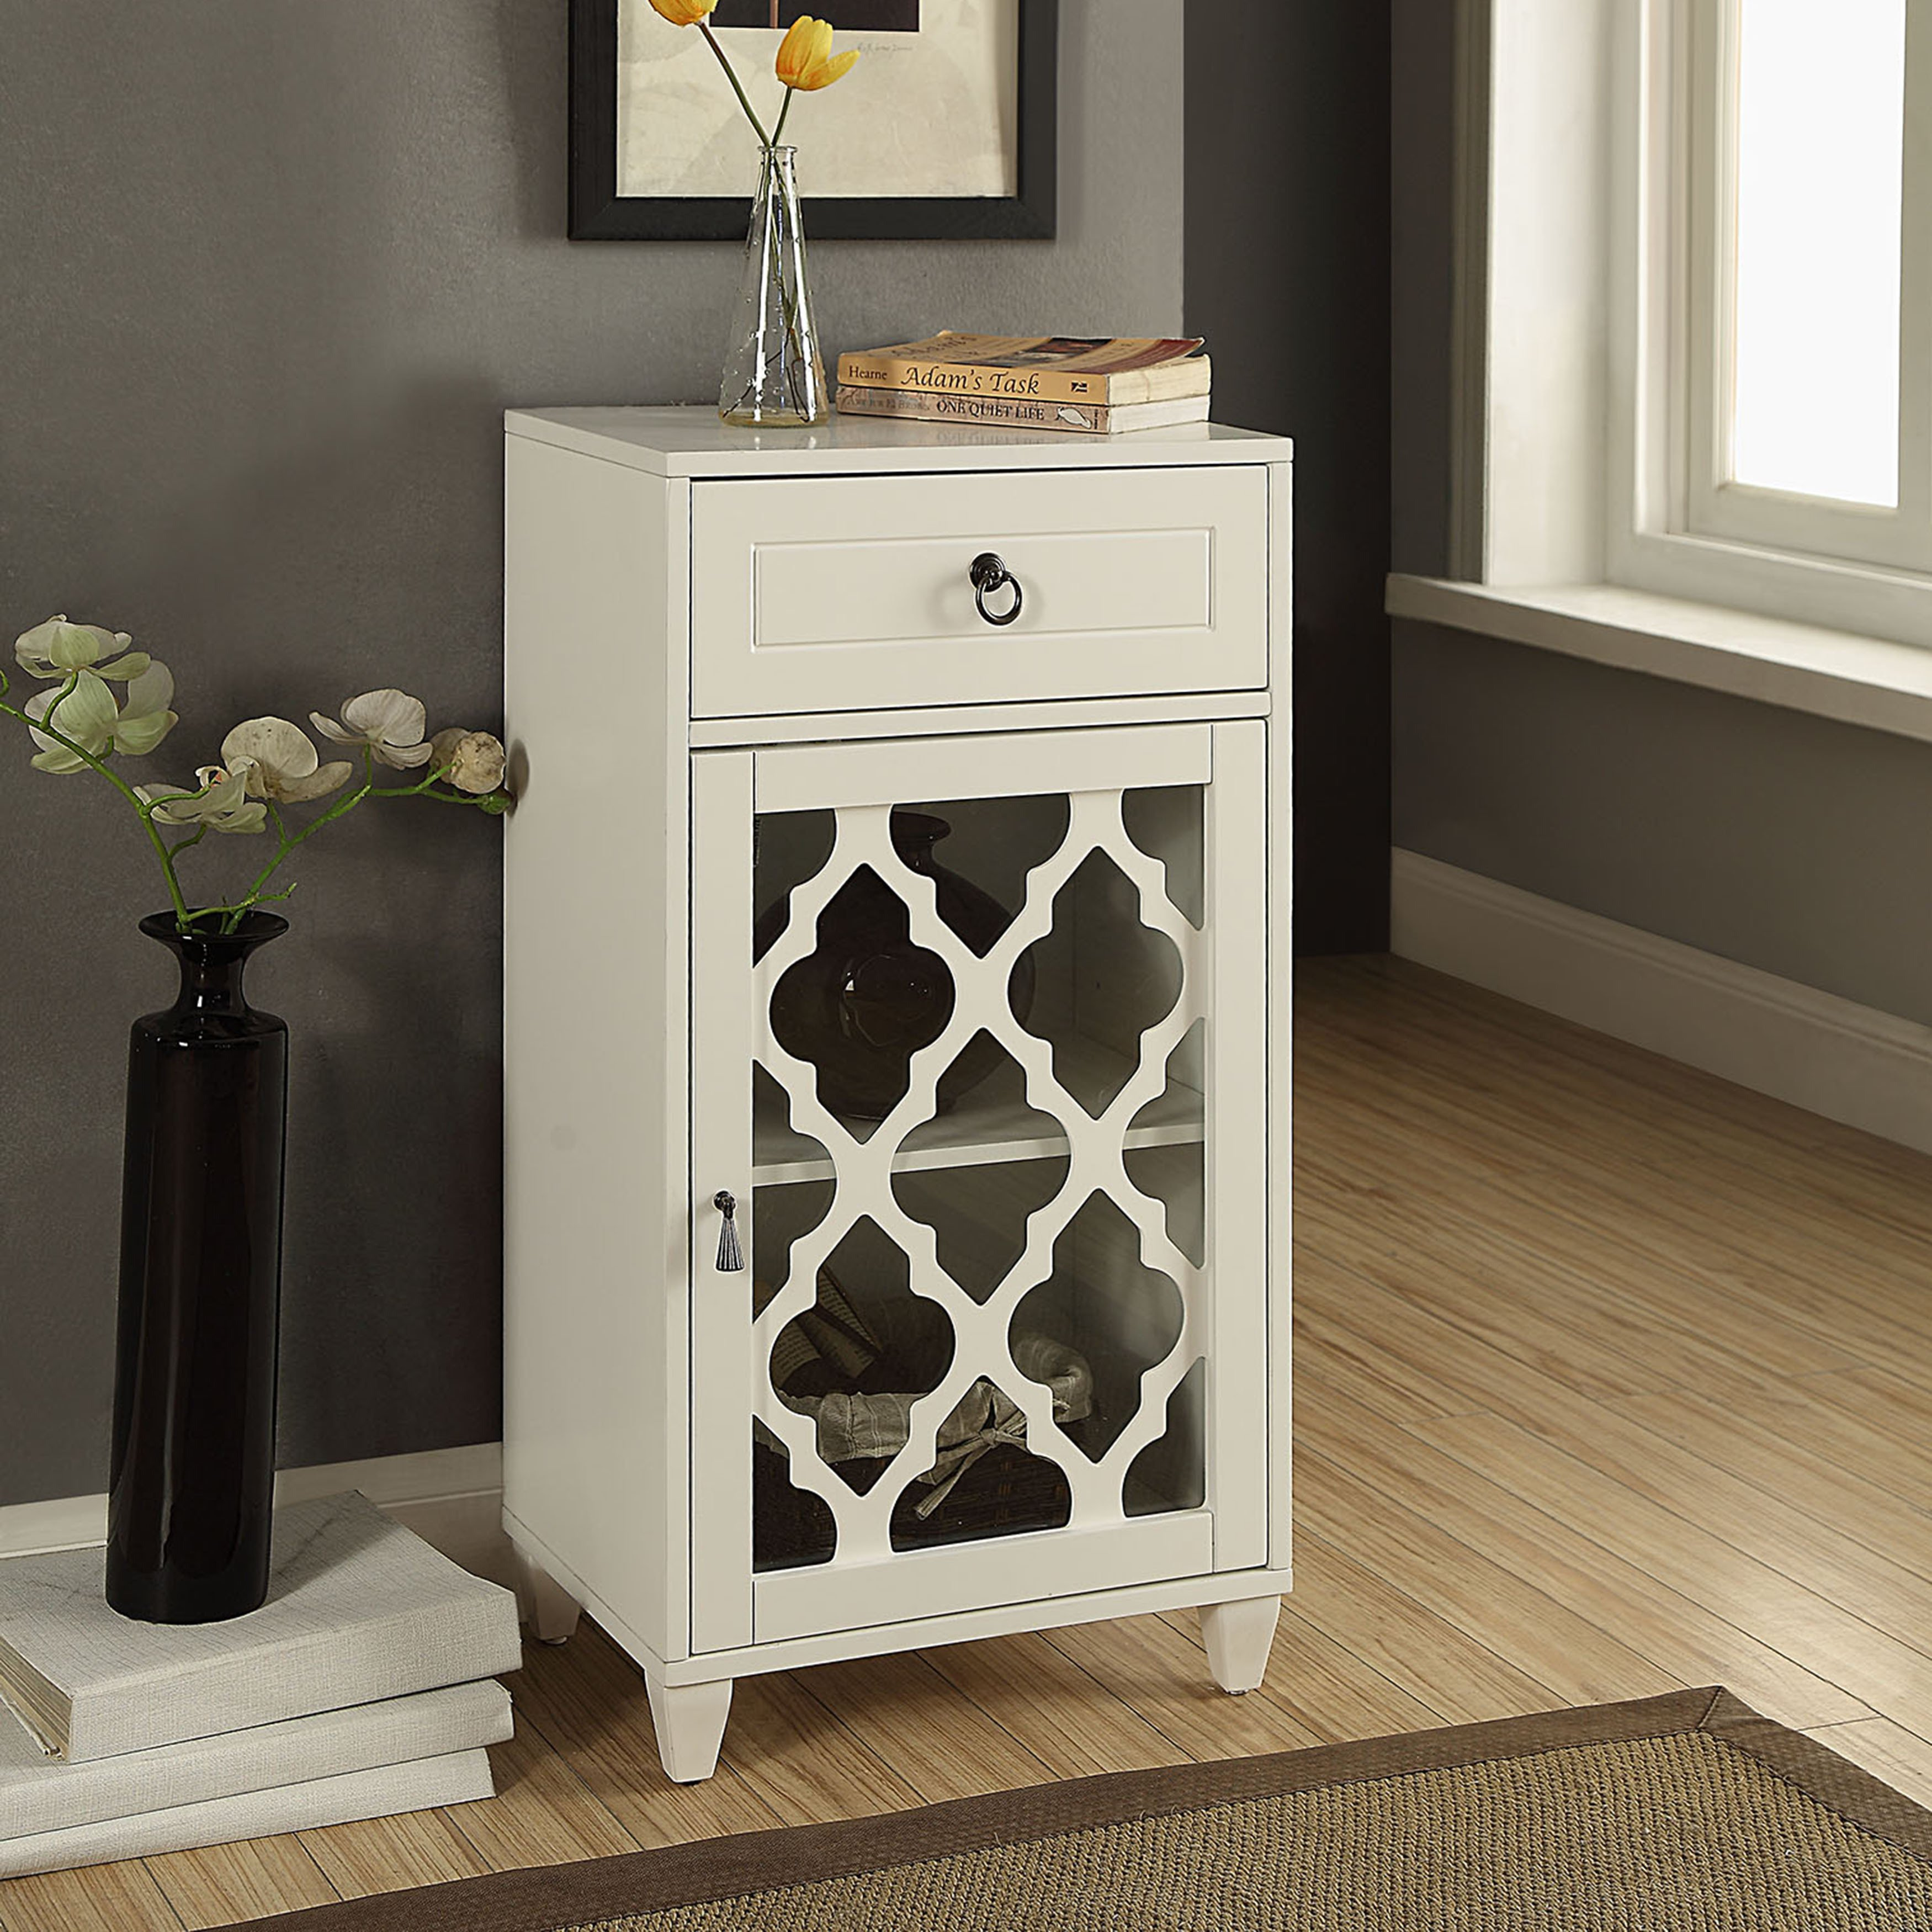 acme furniture ceara white mirrored accent storage table free shipping today metal accents for cream marble sea themed bedroom harveys dale tiffany lighting gold glass bedside